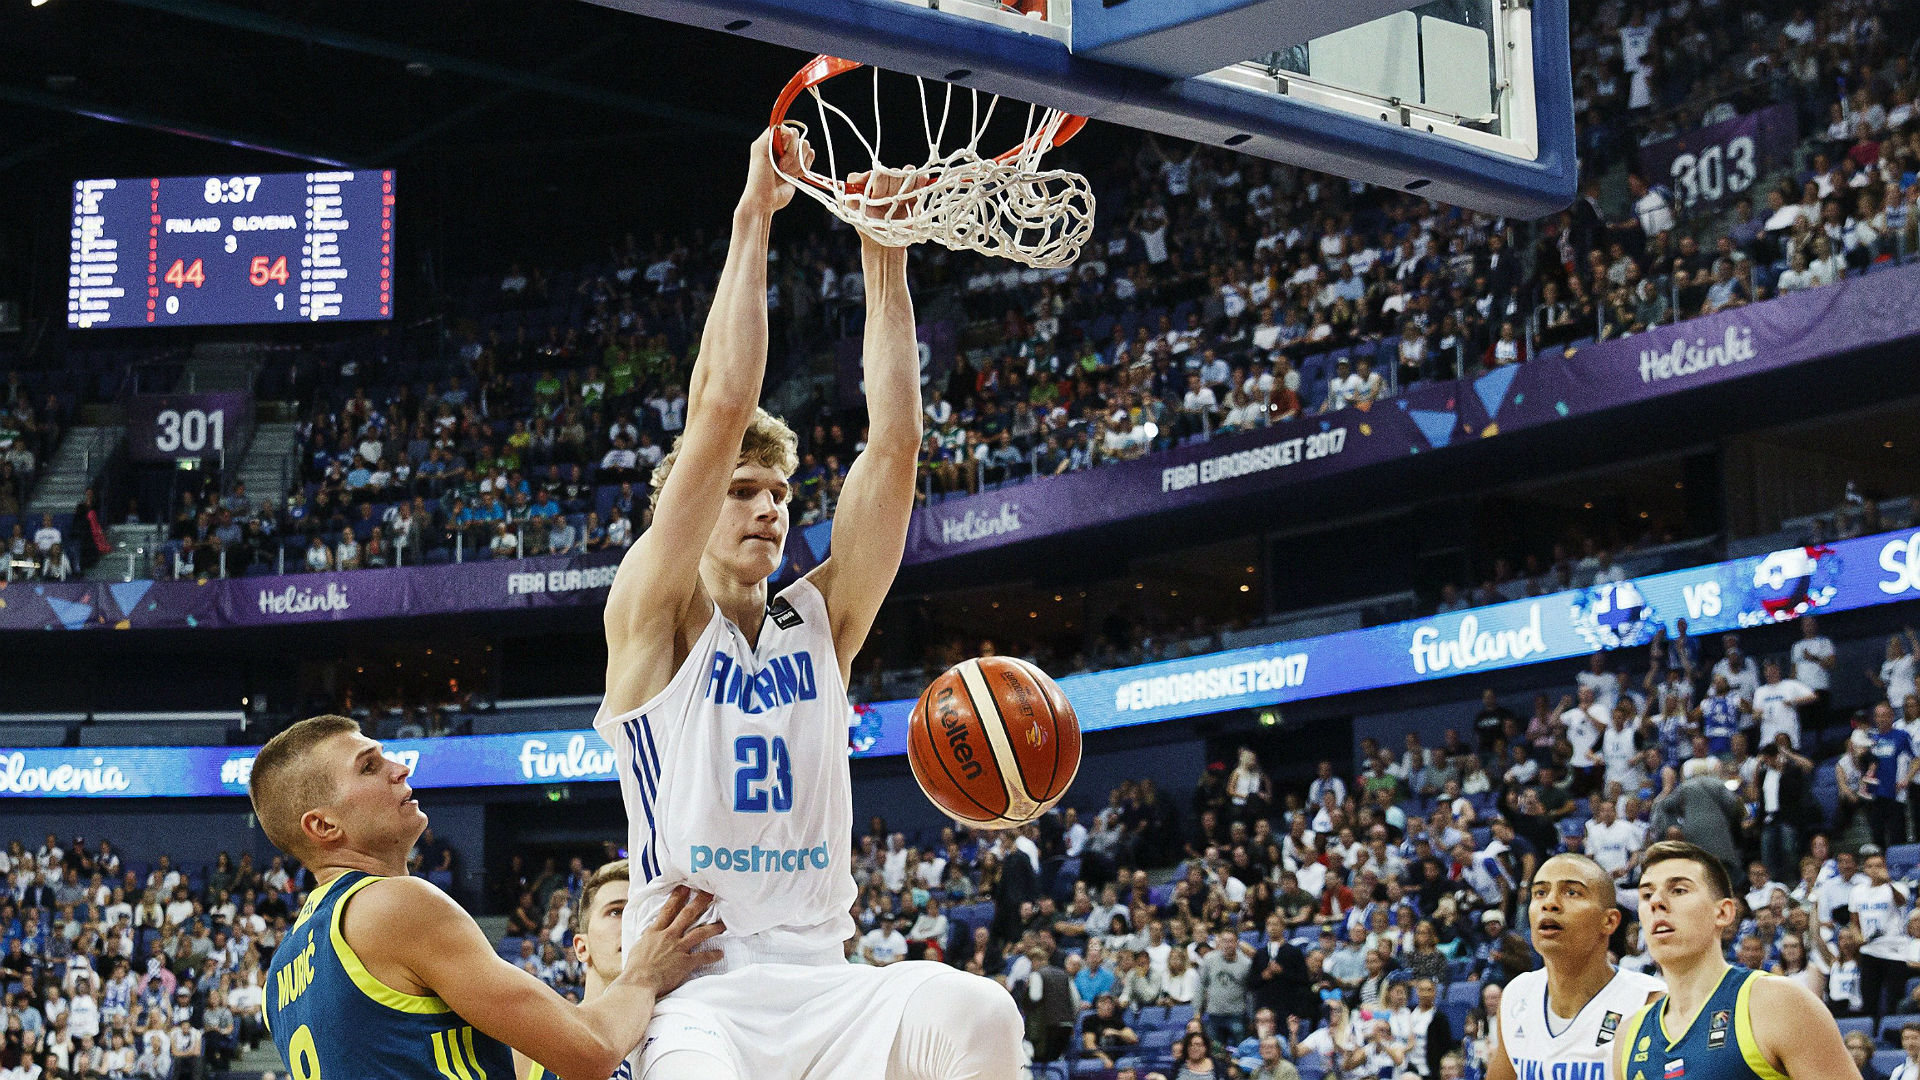 Lauri Markkanen injured in EuroBasket, will play in next game